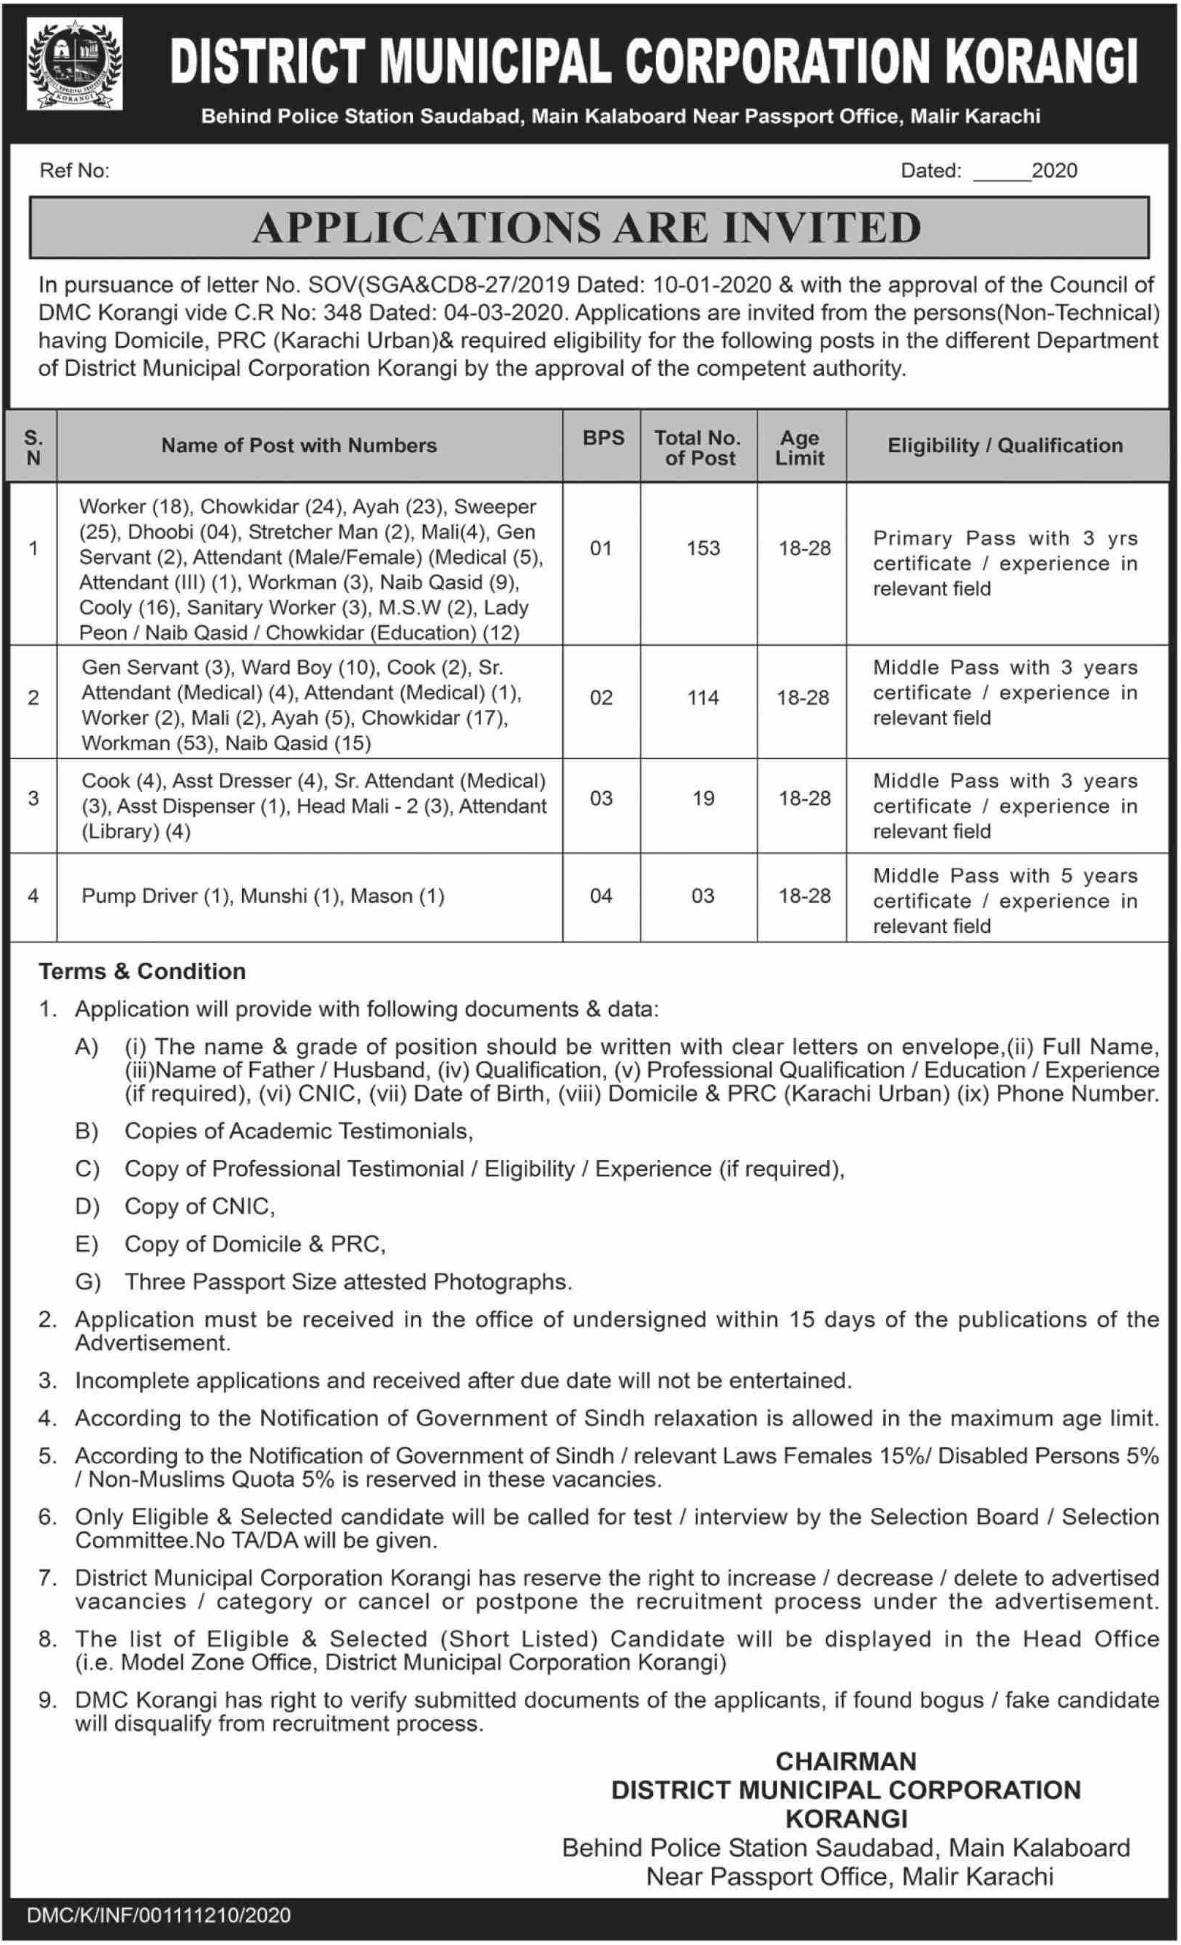 District Municipal Corporation Korangi Karachi Jobs 2020 Sindh